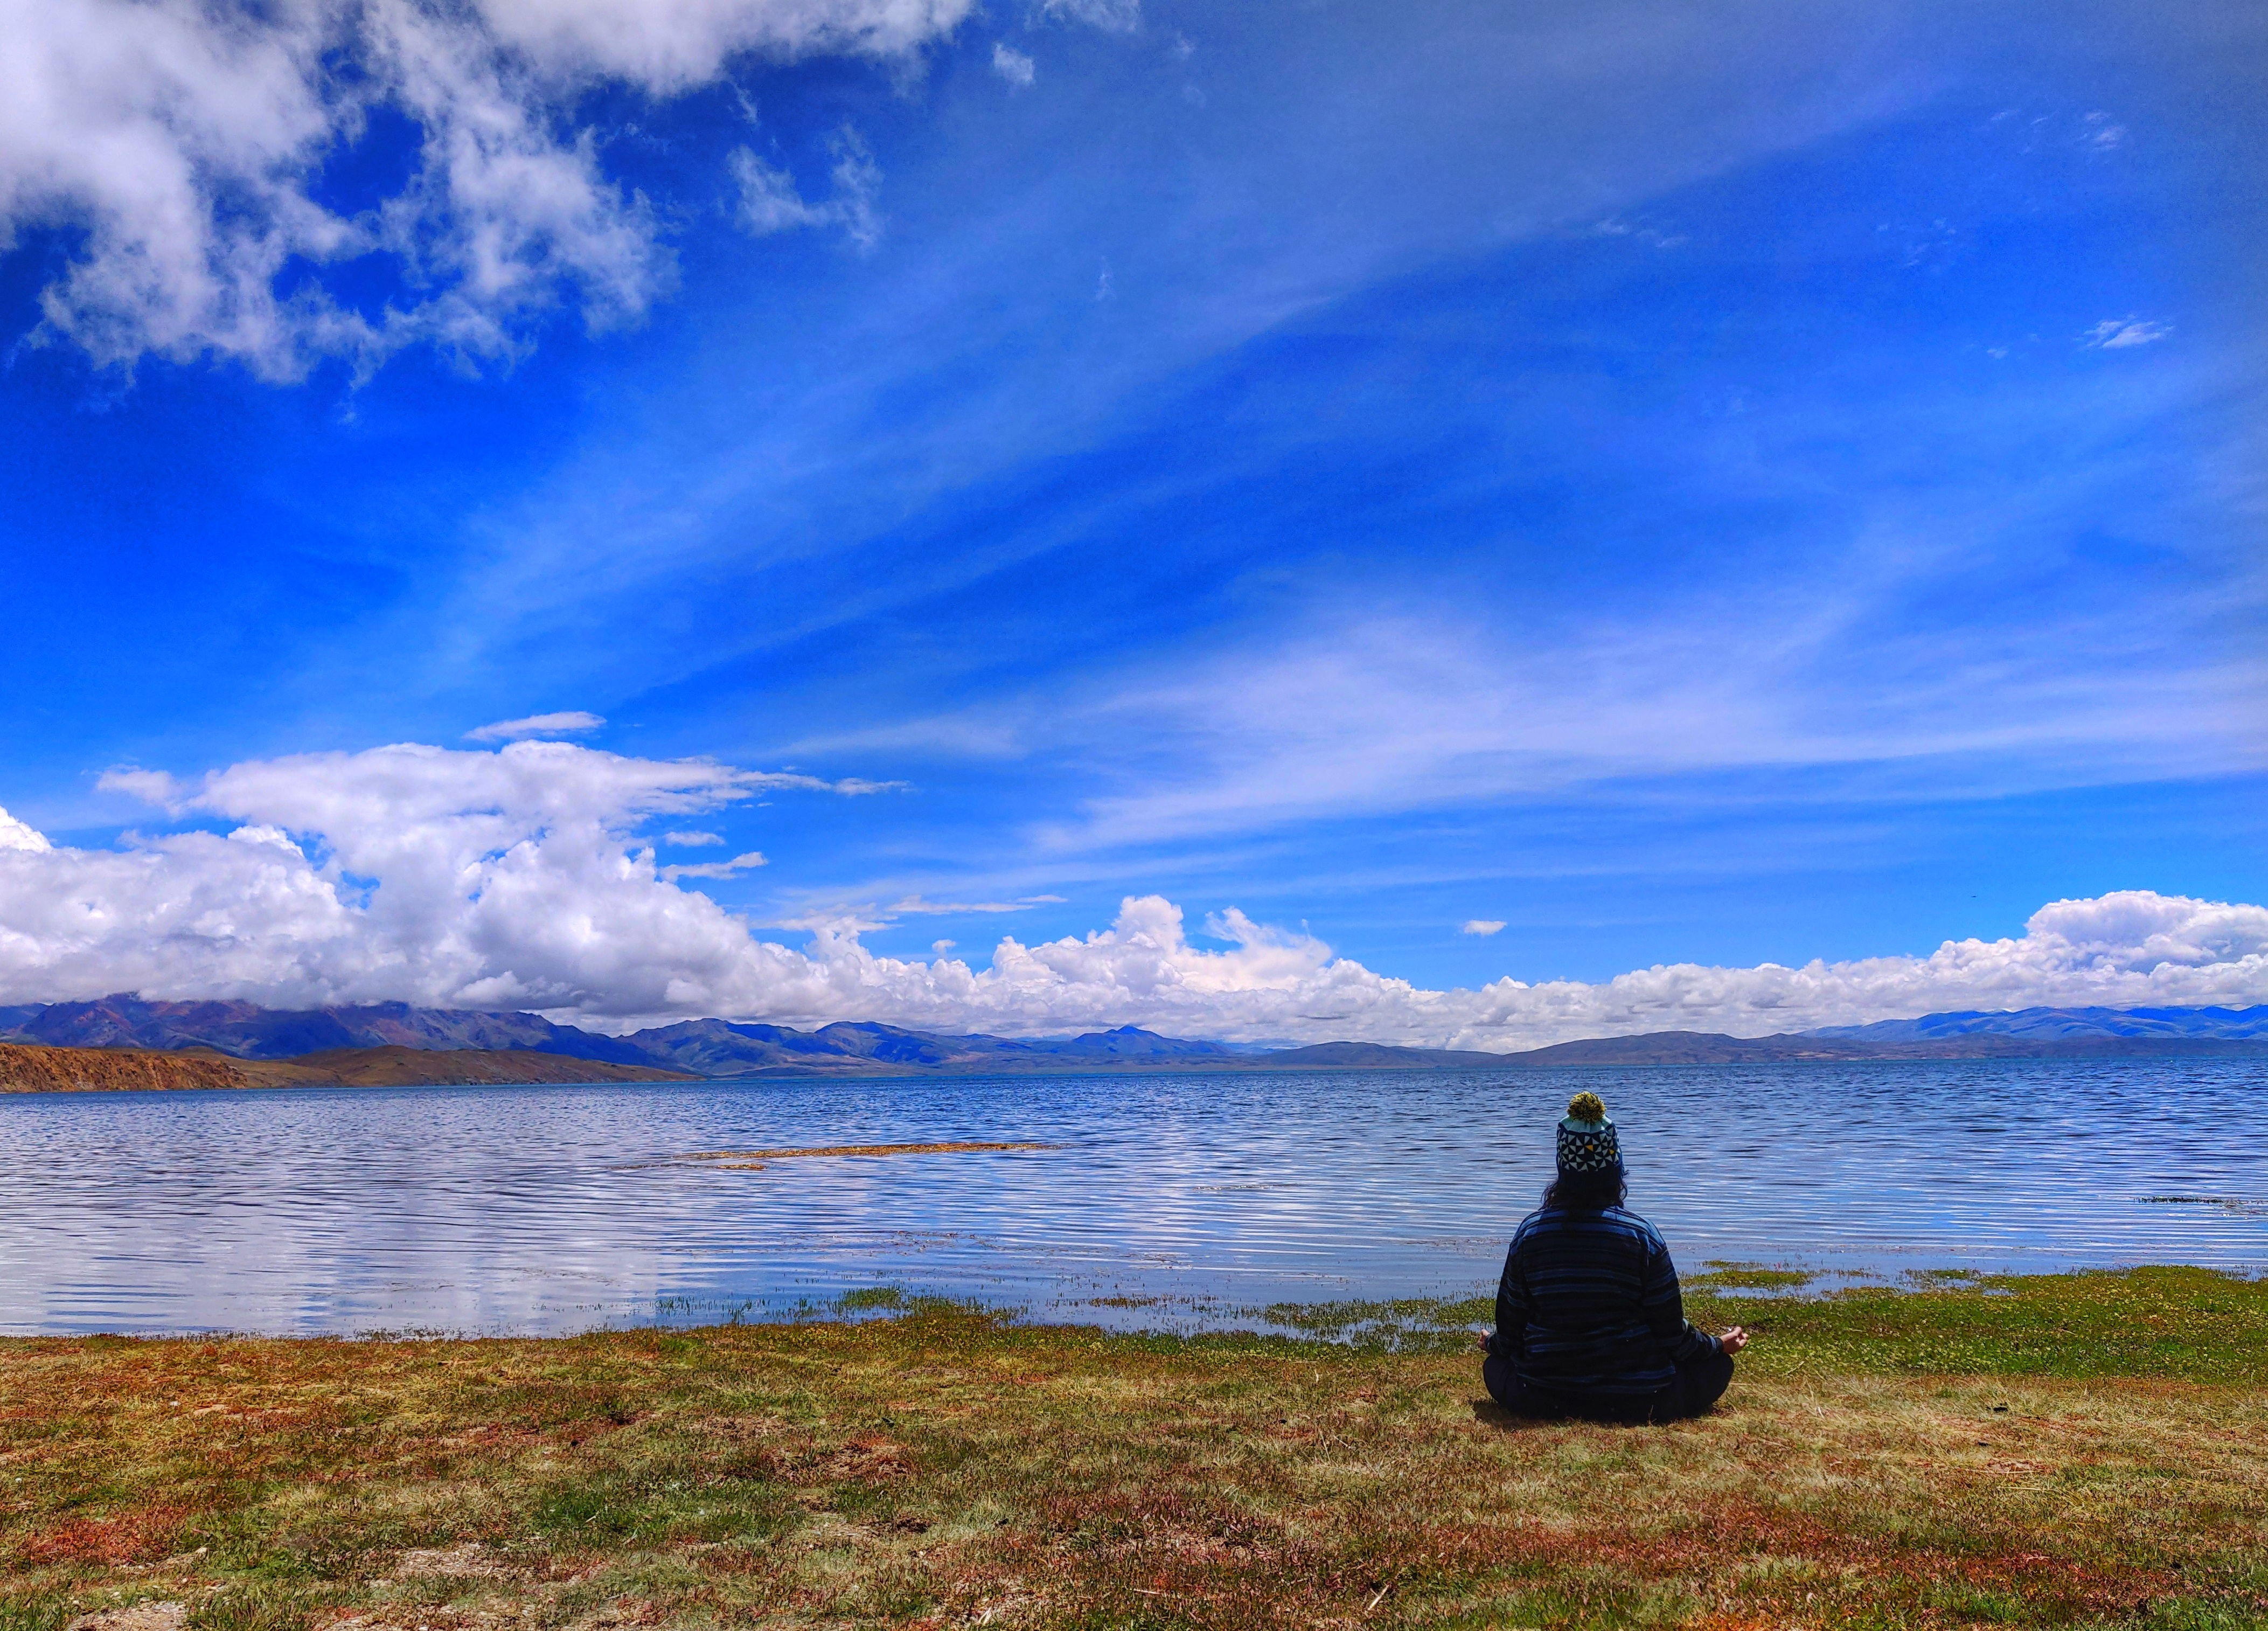 I am sitting by the side of Lake Mansarovar during Kailash Mansarovar Yatra